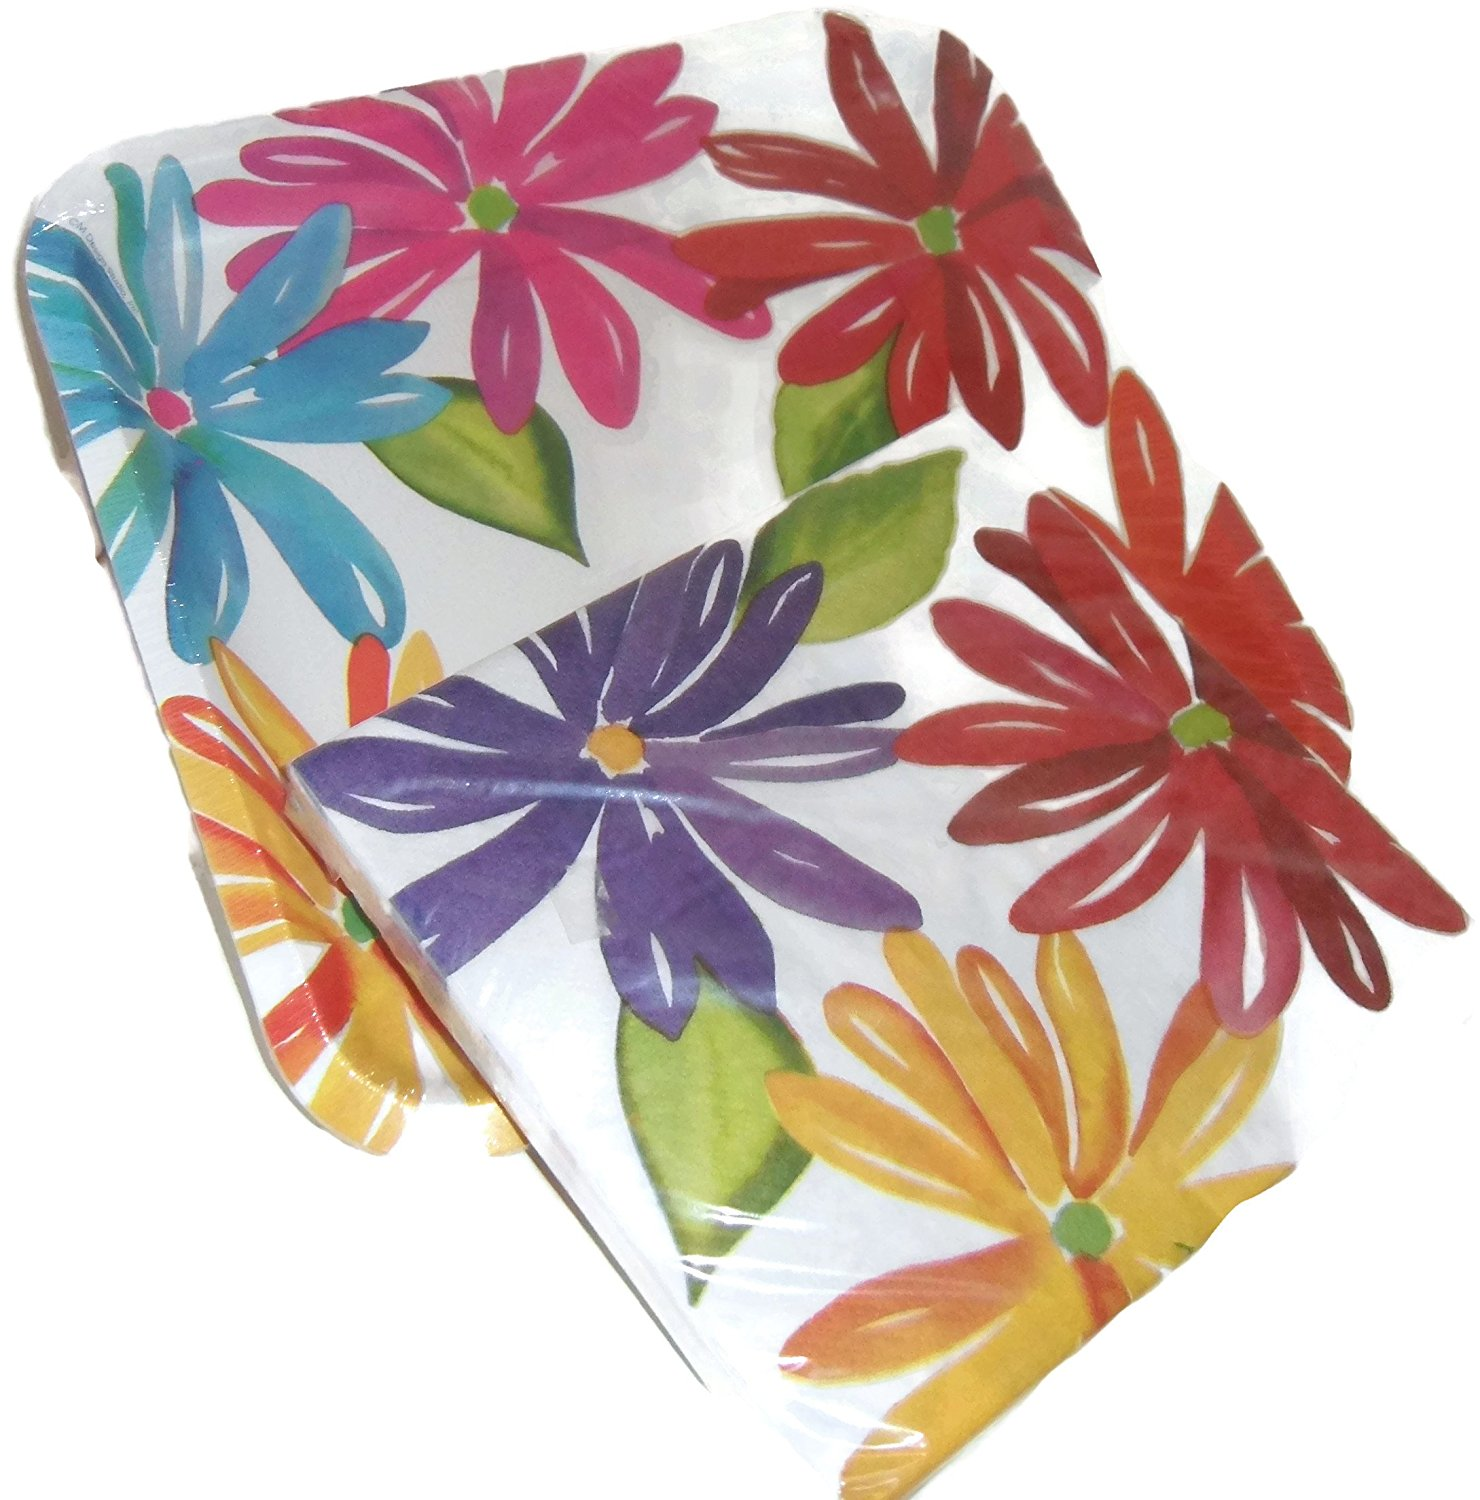 Cheap paper plates and napkins find paper plates and napkins deals get quotations squared flowered paper party plates and matching napkins set 8 plates 16 napkins mightylinksfo